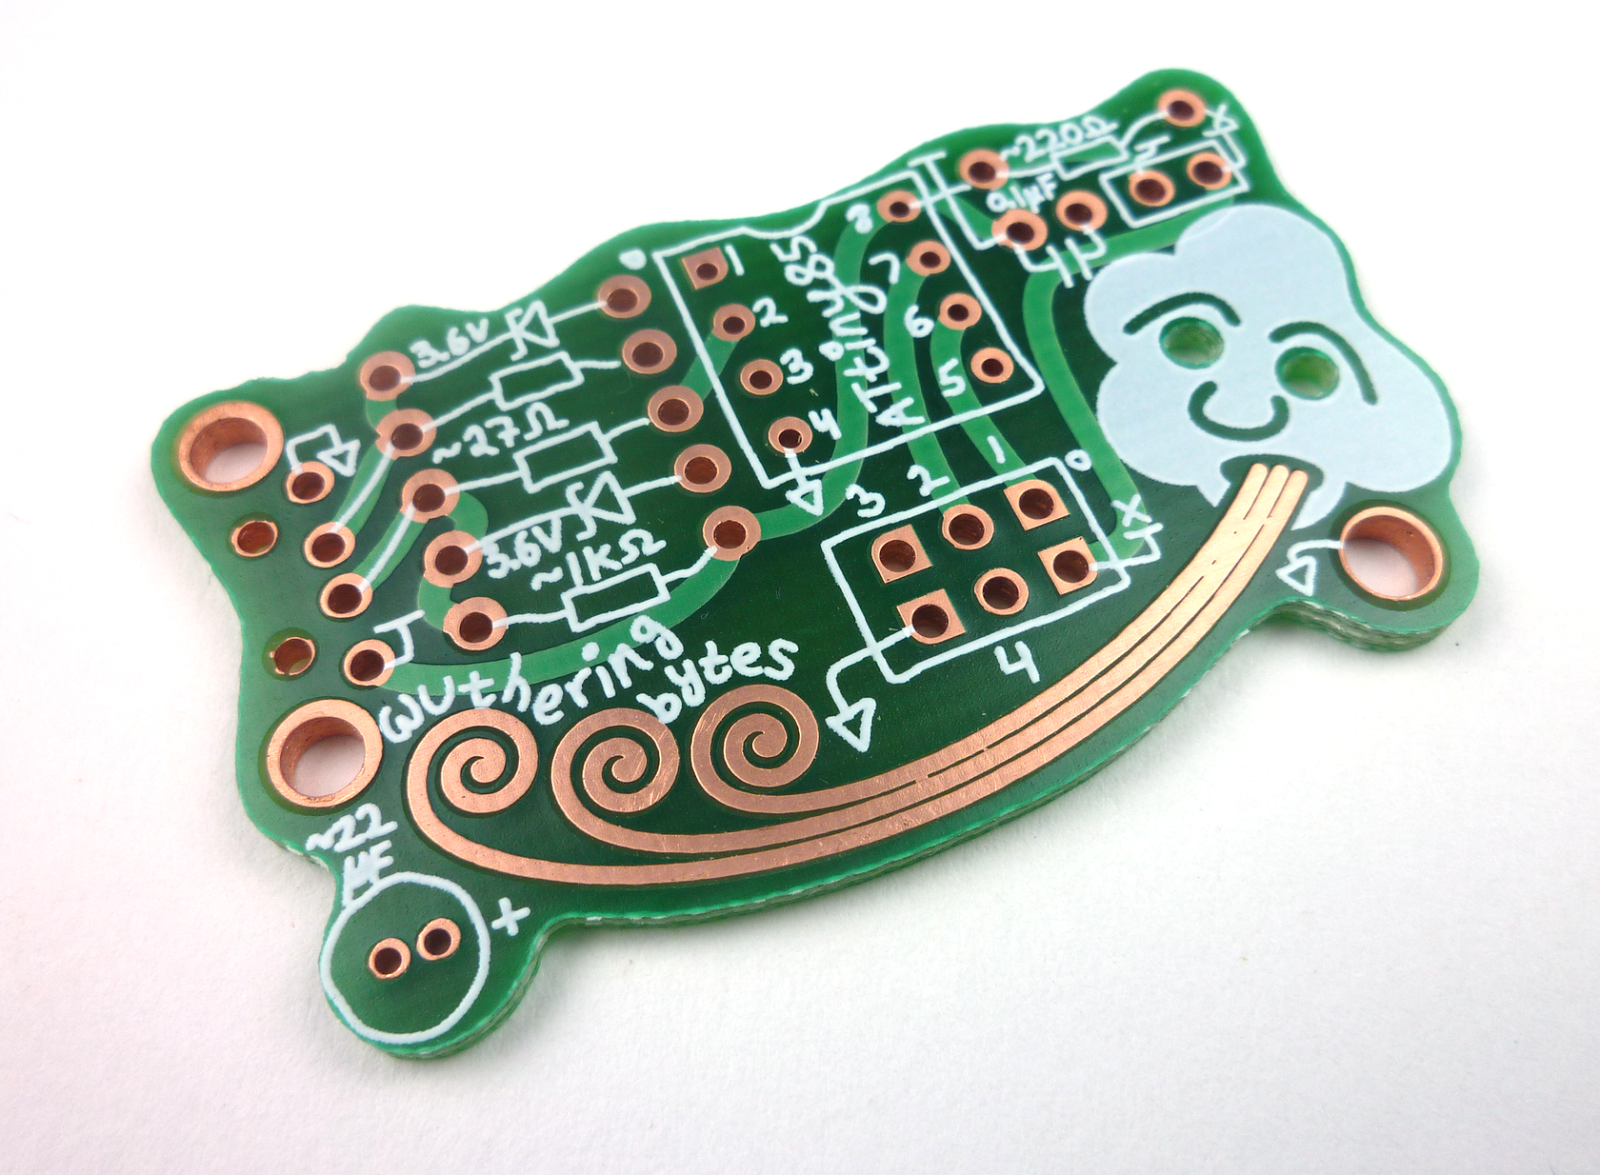 The 'wuther', lovingly manufactured by P+M Services for the  Wuthering Bytes  workshop